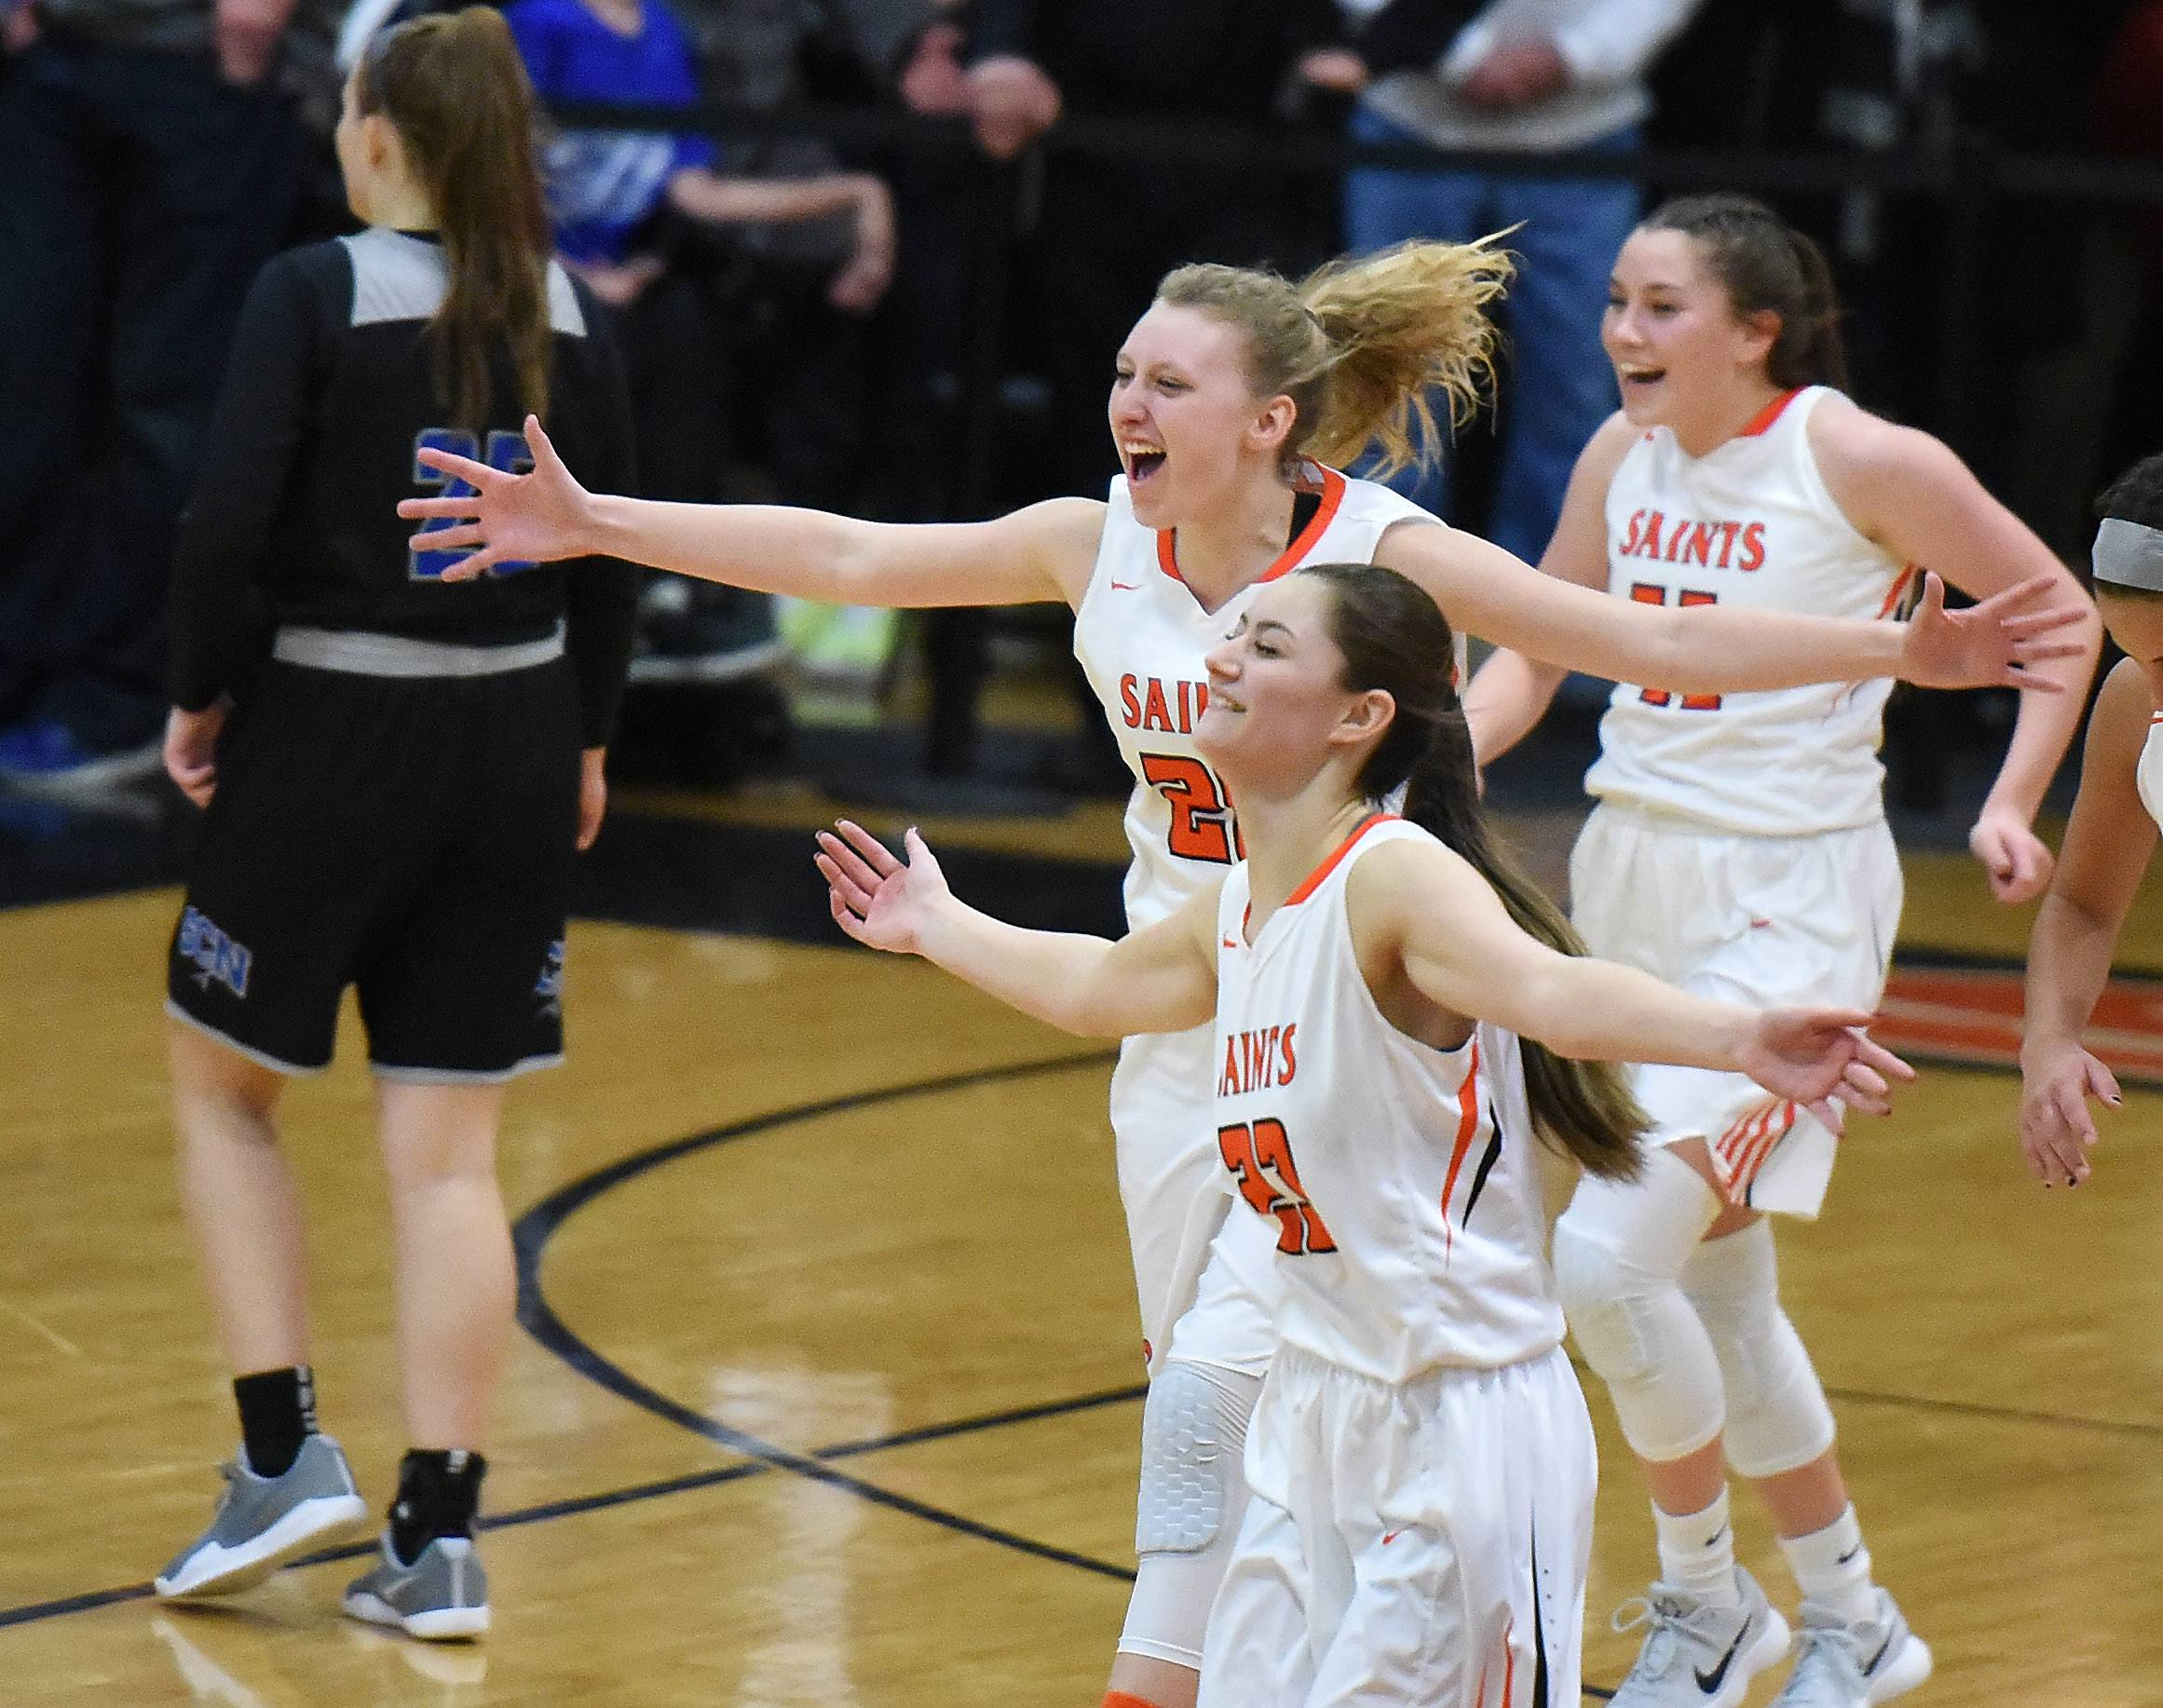 Images: St. Charles East vs. St. Charles North, girls and boys basketball